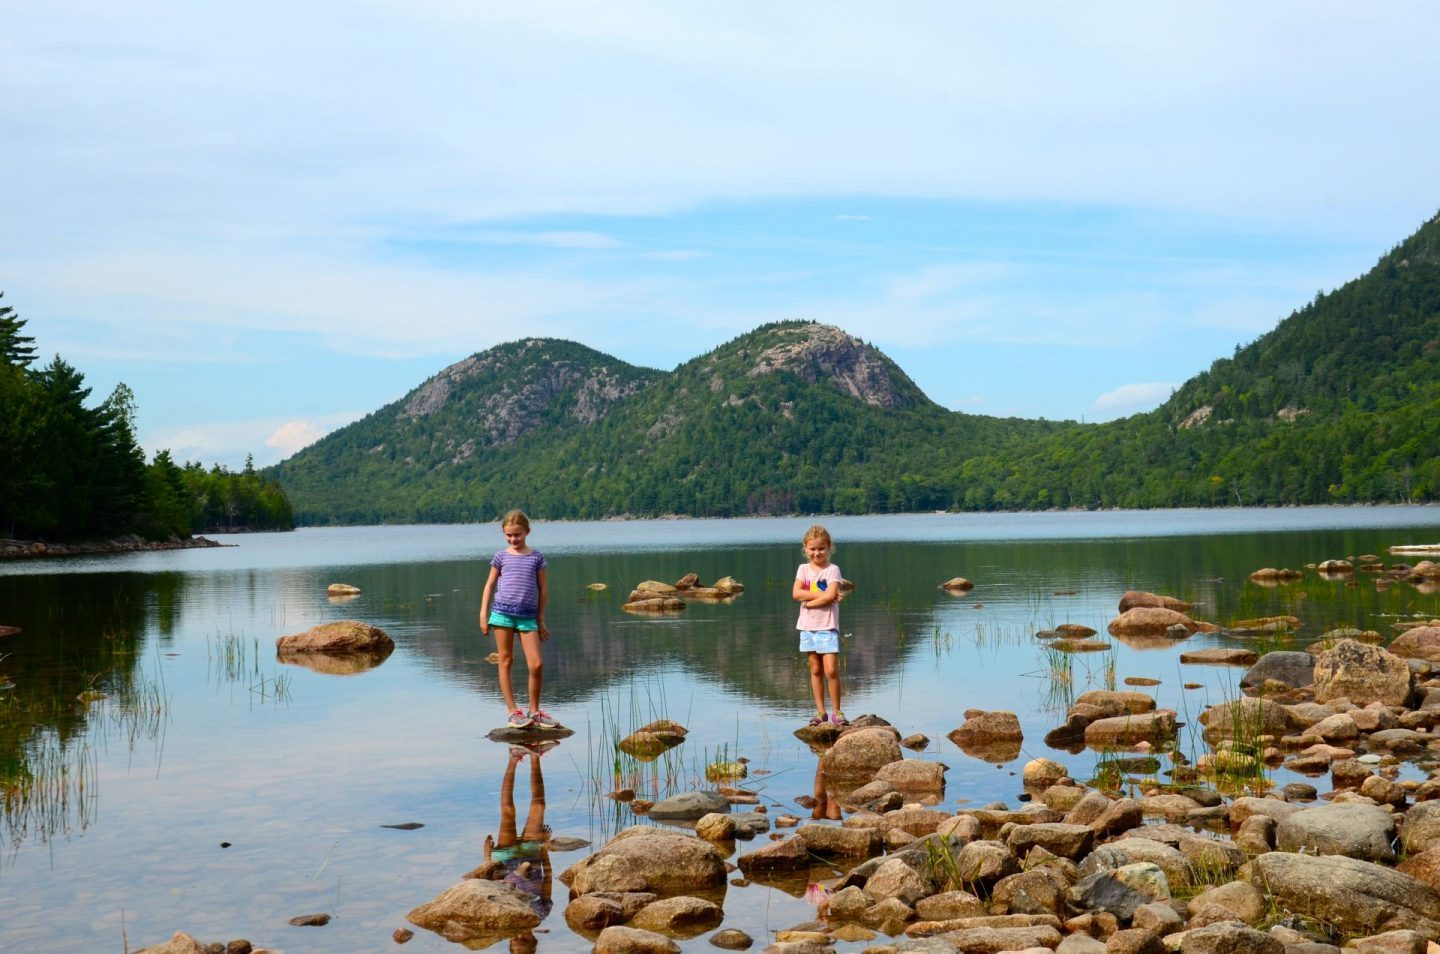 Playing on the rocks at Jordan Pond in Acadia National Park